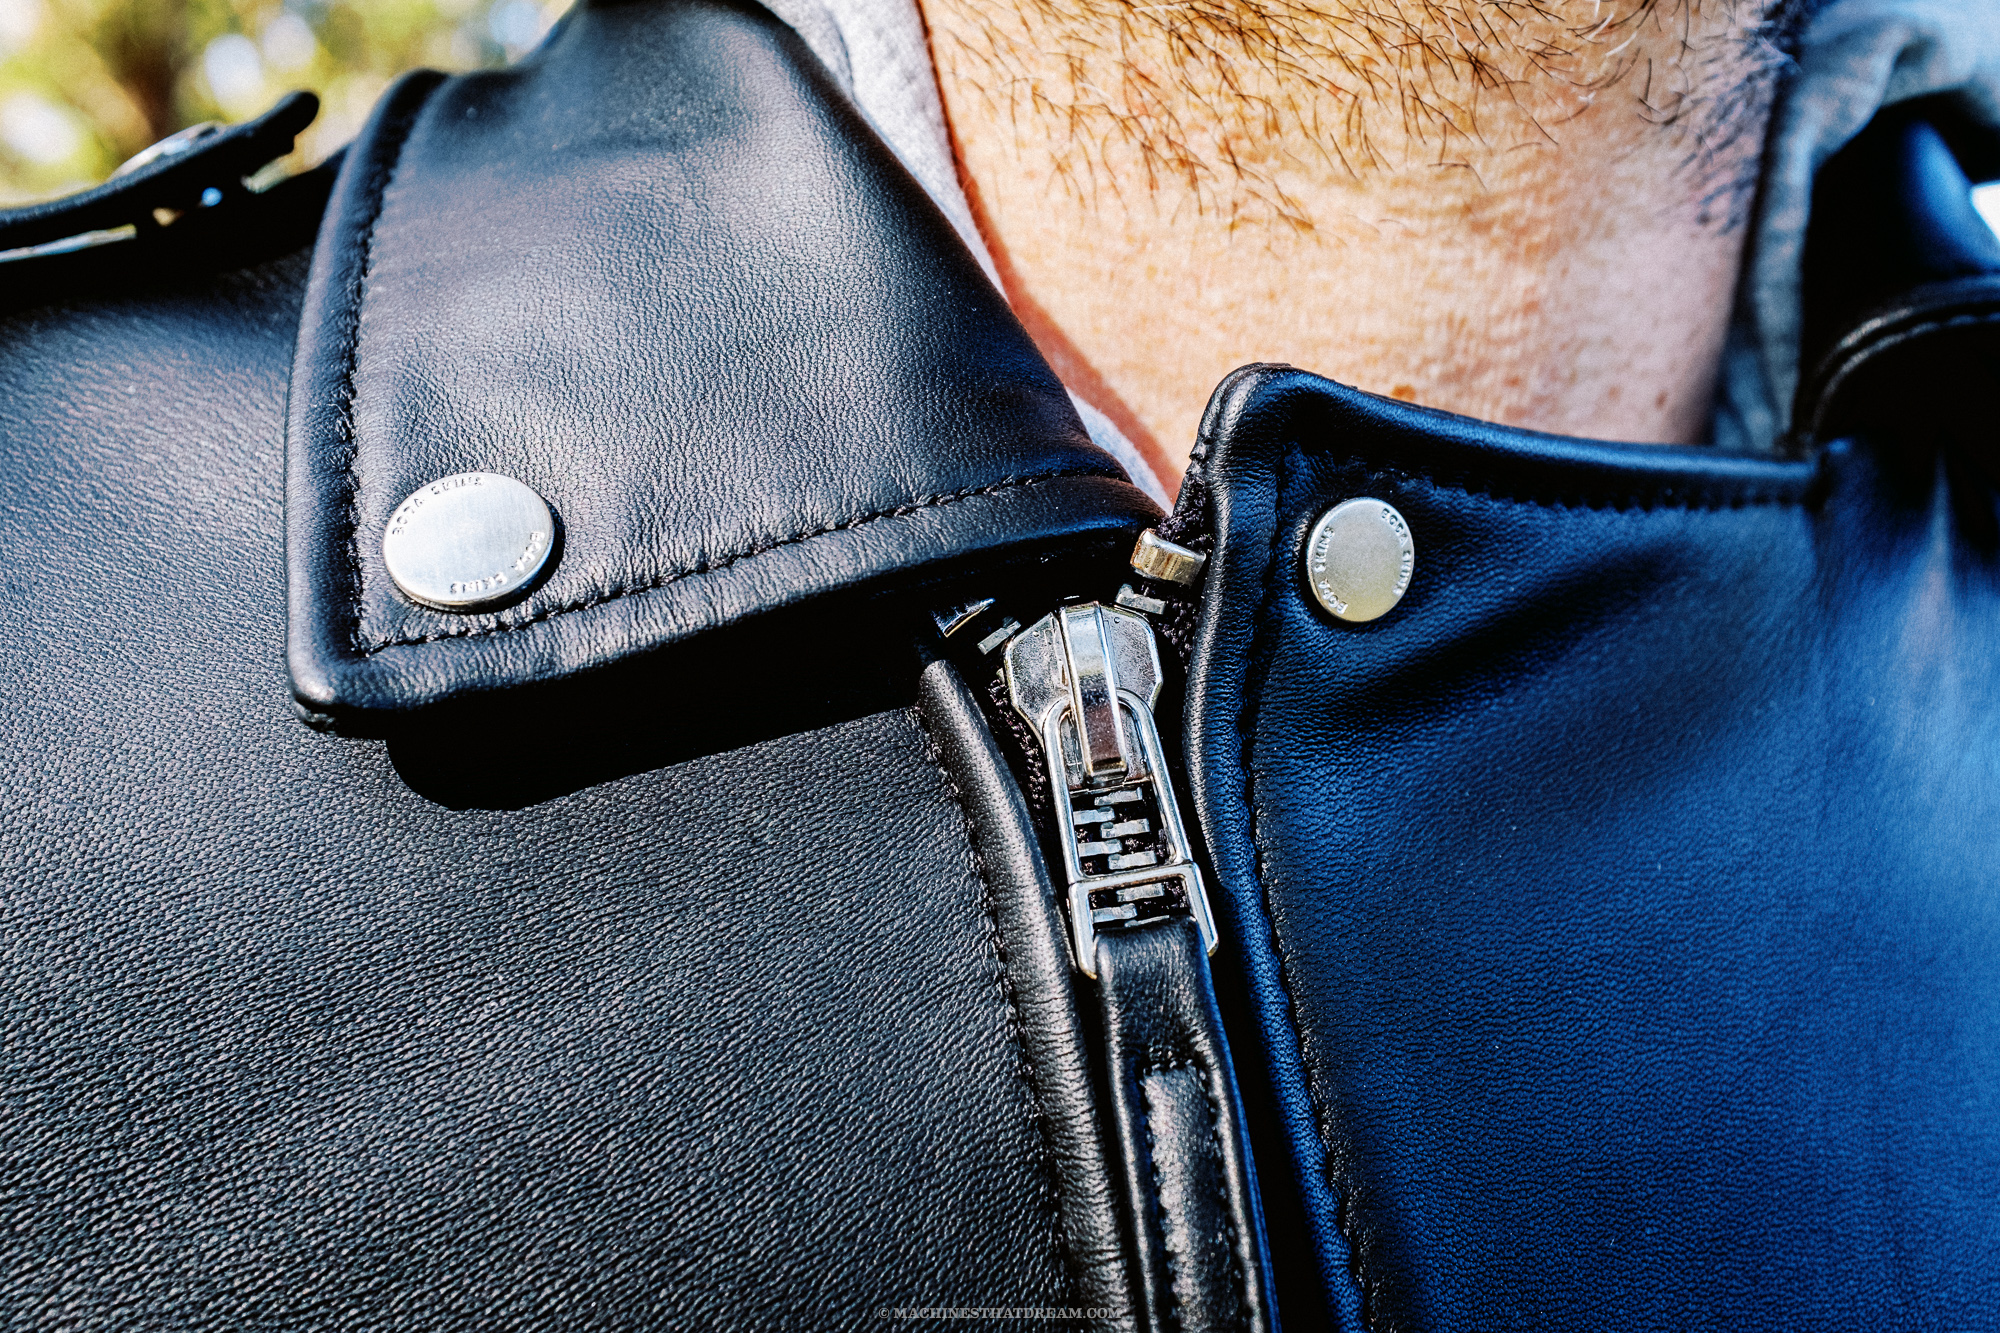 A detail shot of the Boda Skin's 'Voyager' leather motorcycle jacket